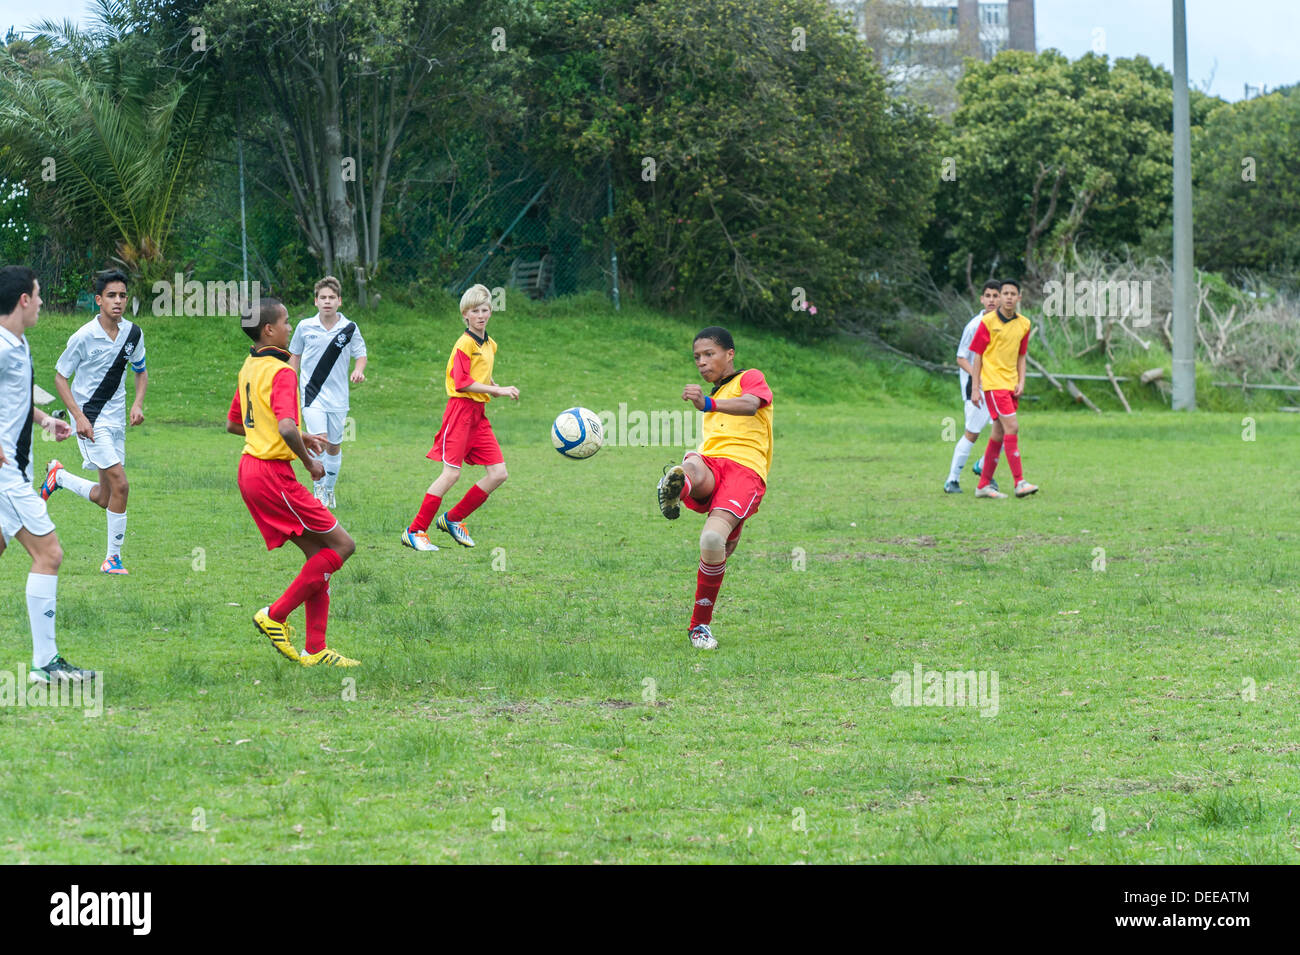 Junior football player volleys the ball , Cape Town, South Africa - Stock Image